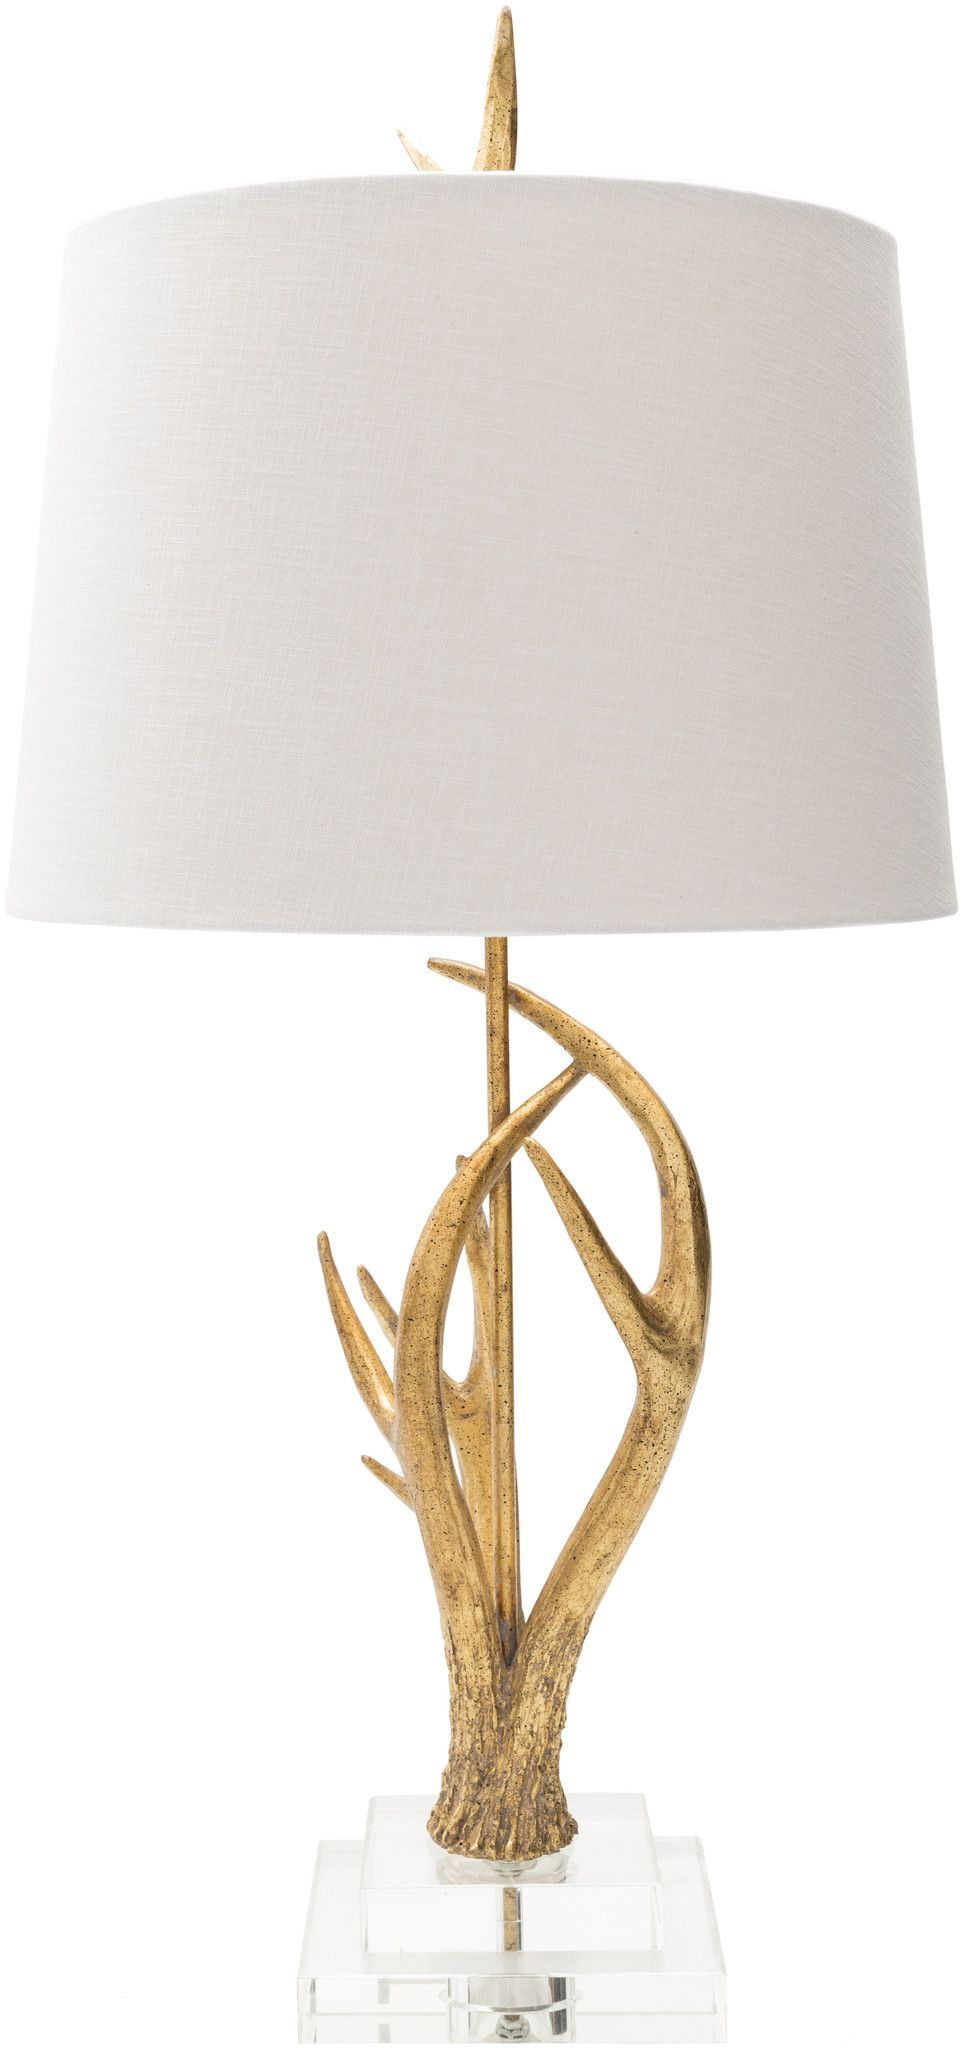 Buckland glamnovelty table lamp painted white products buckland glamnovelty table lamp painted white aloadofball Gallery